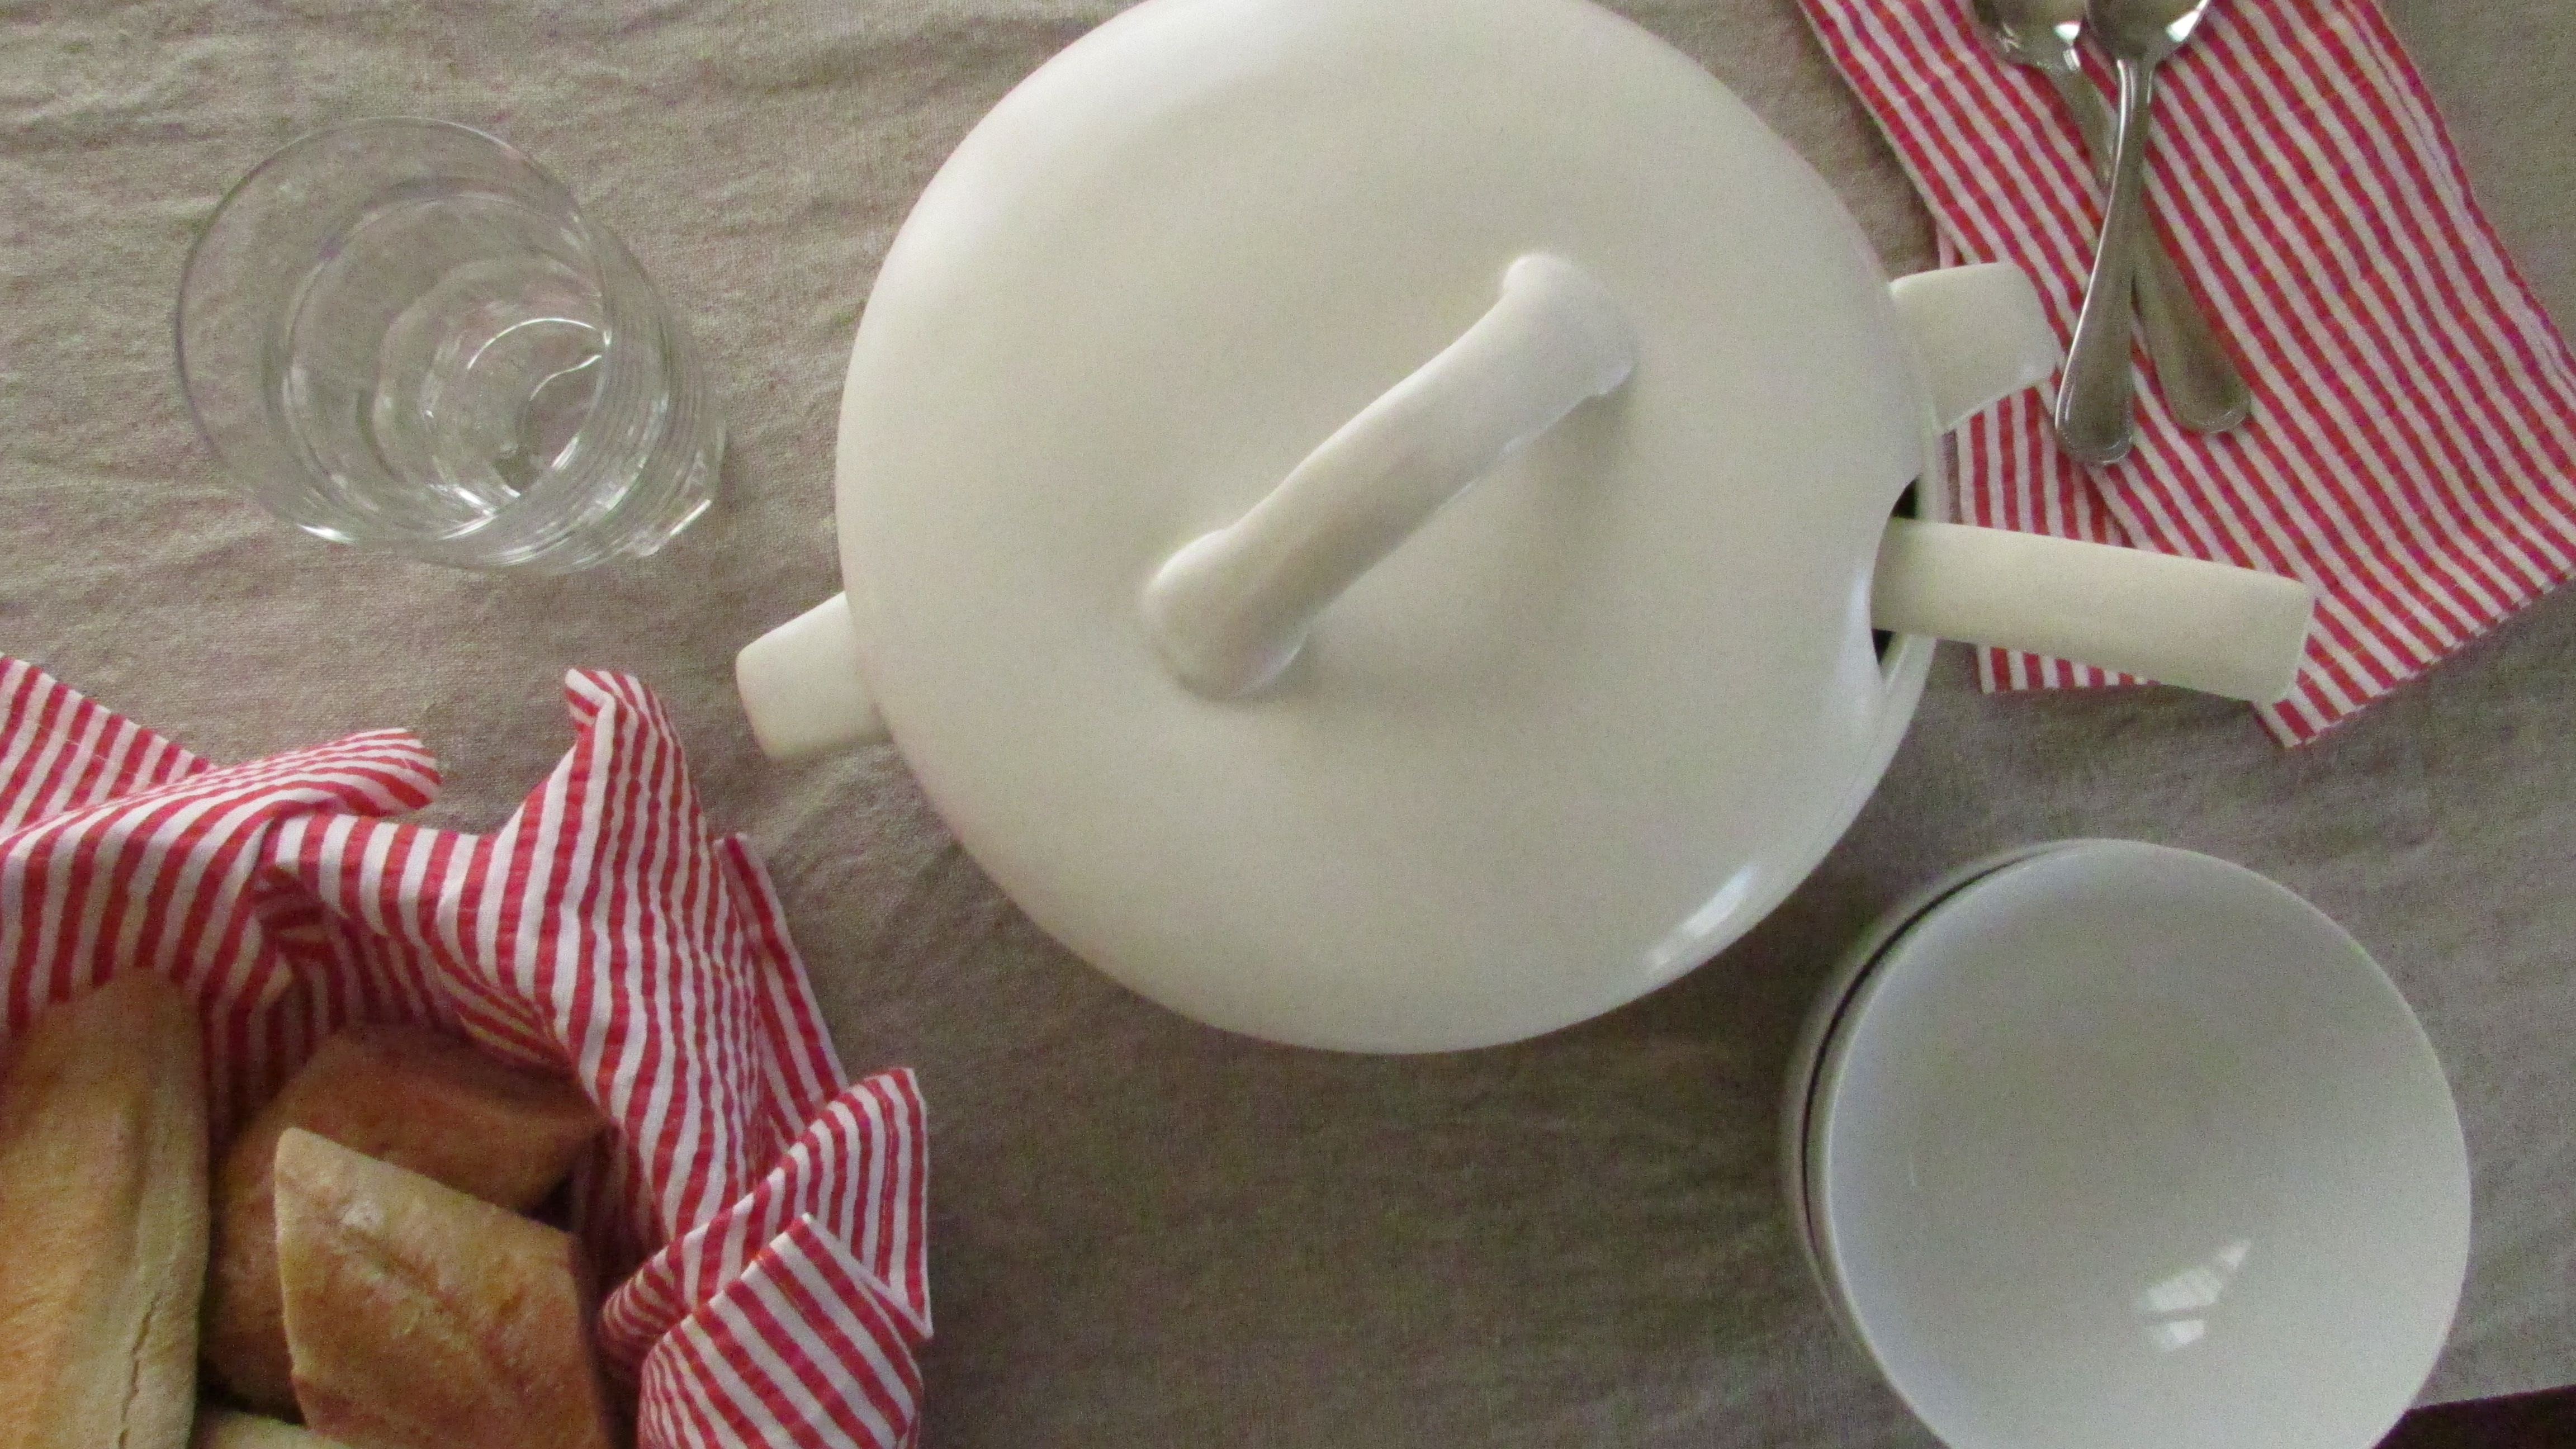 Soup tureen and bread